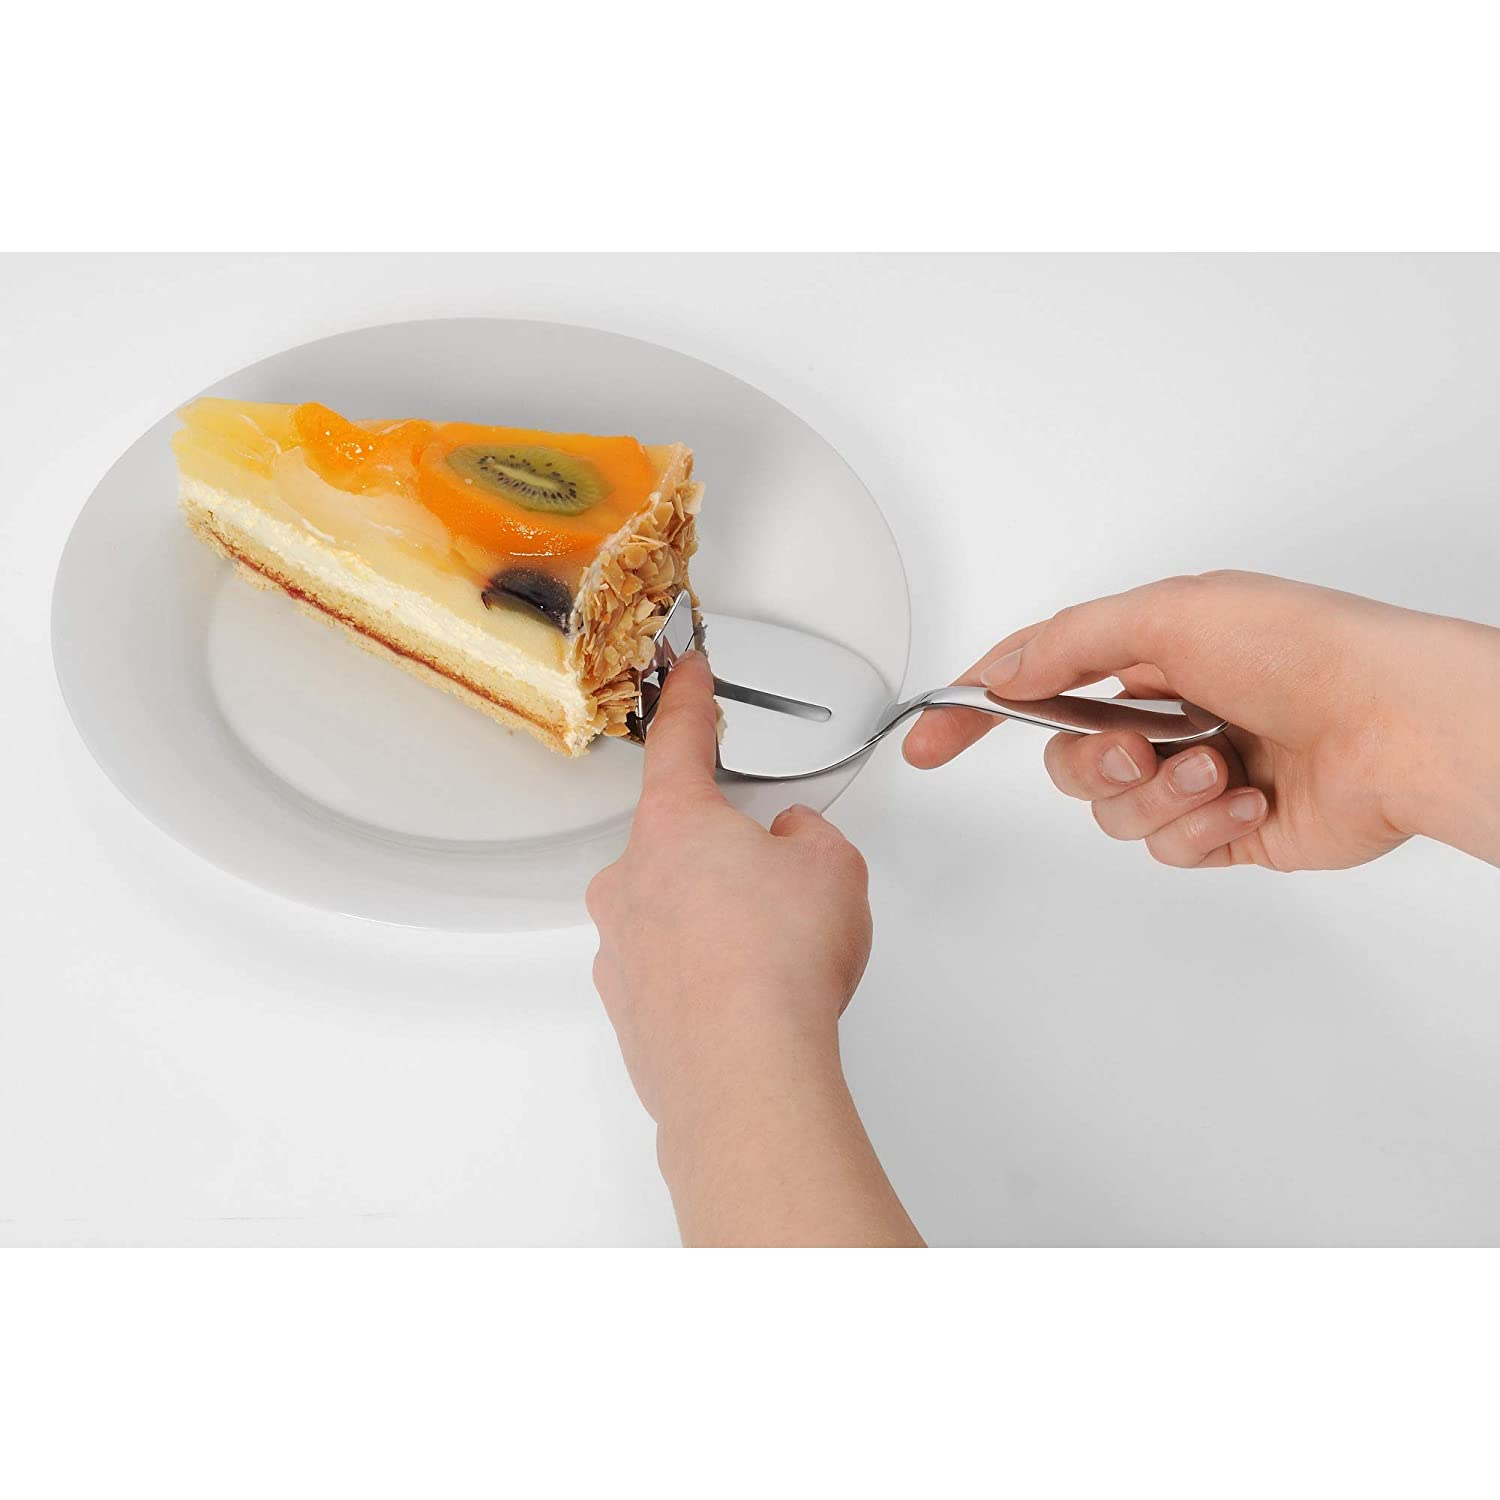 Stainless Steel silver 42 x 31.5 x 10.19 cm Silit Cake Server Midi Crominox Polished Stainless Steel